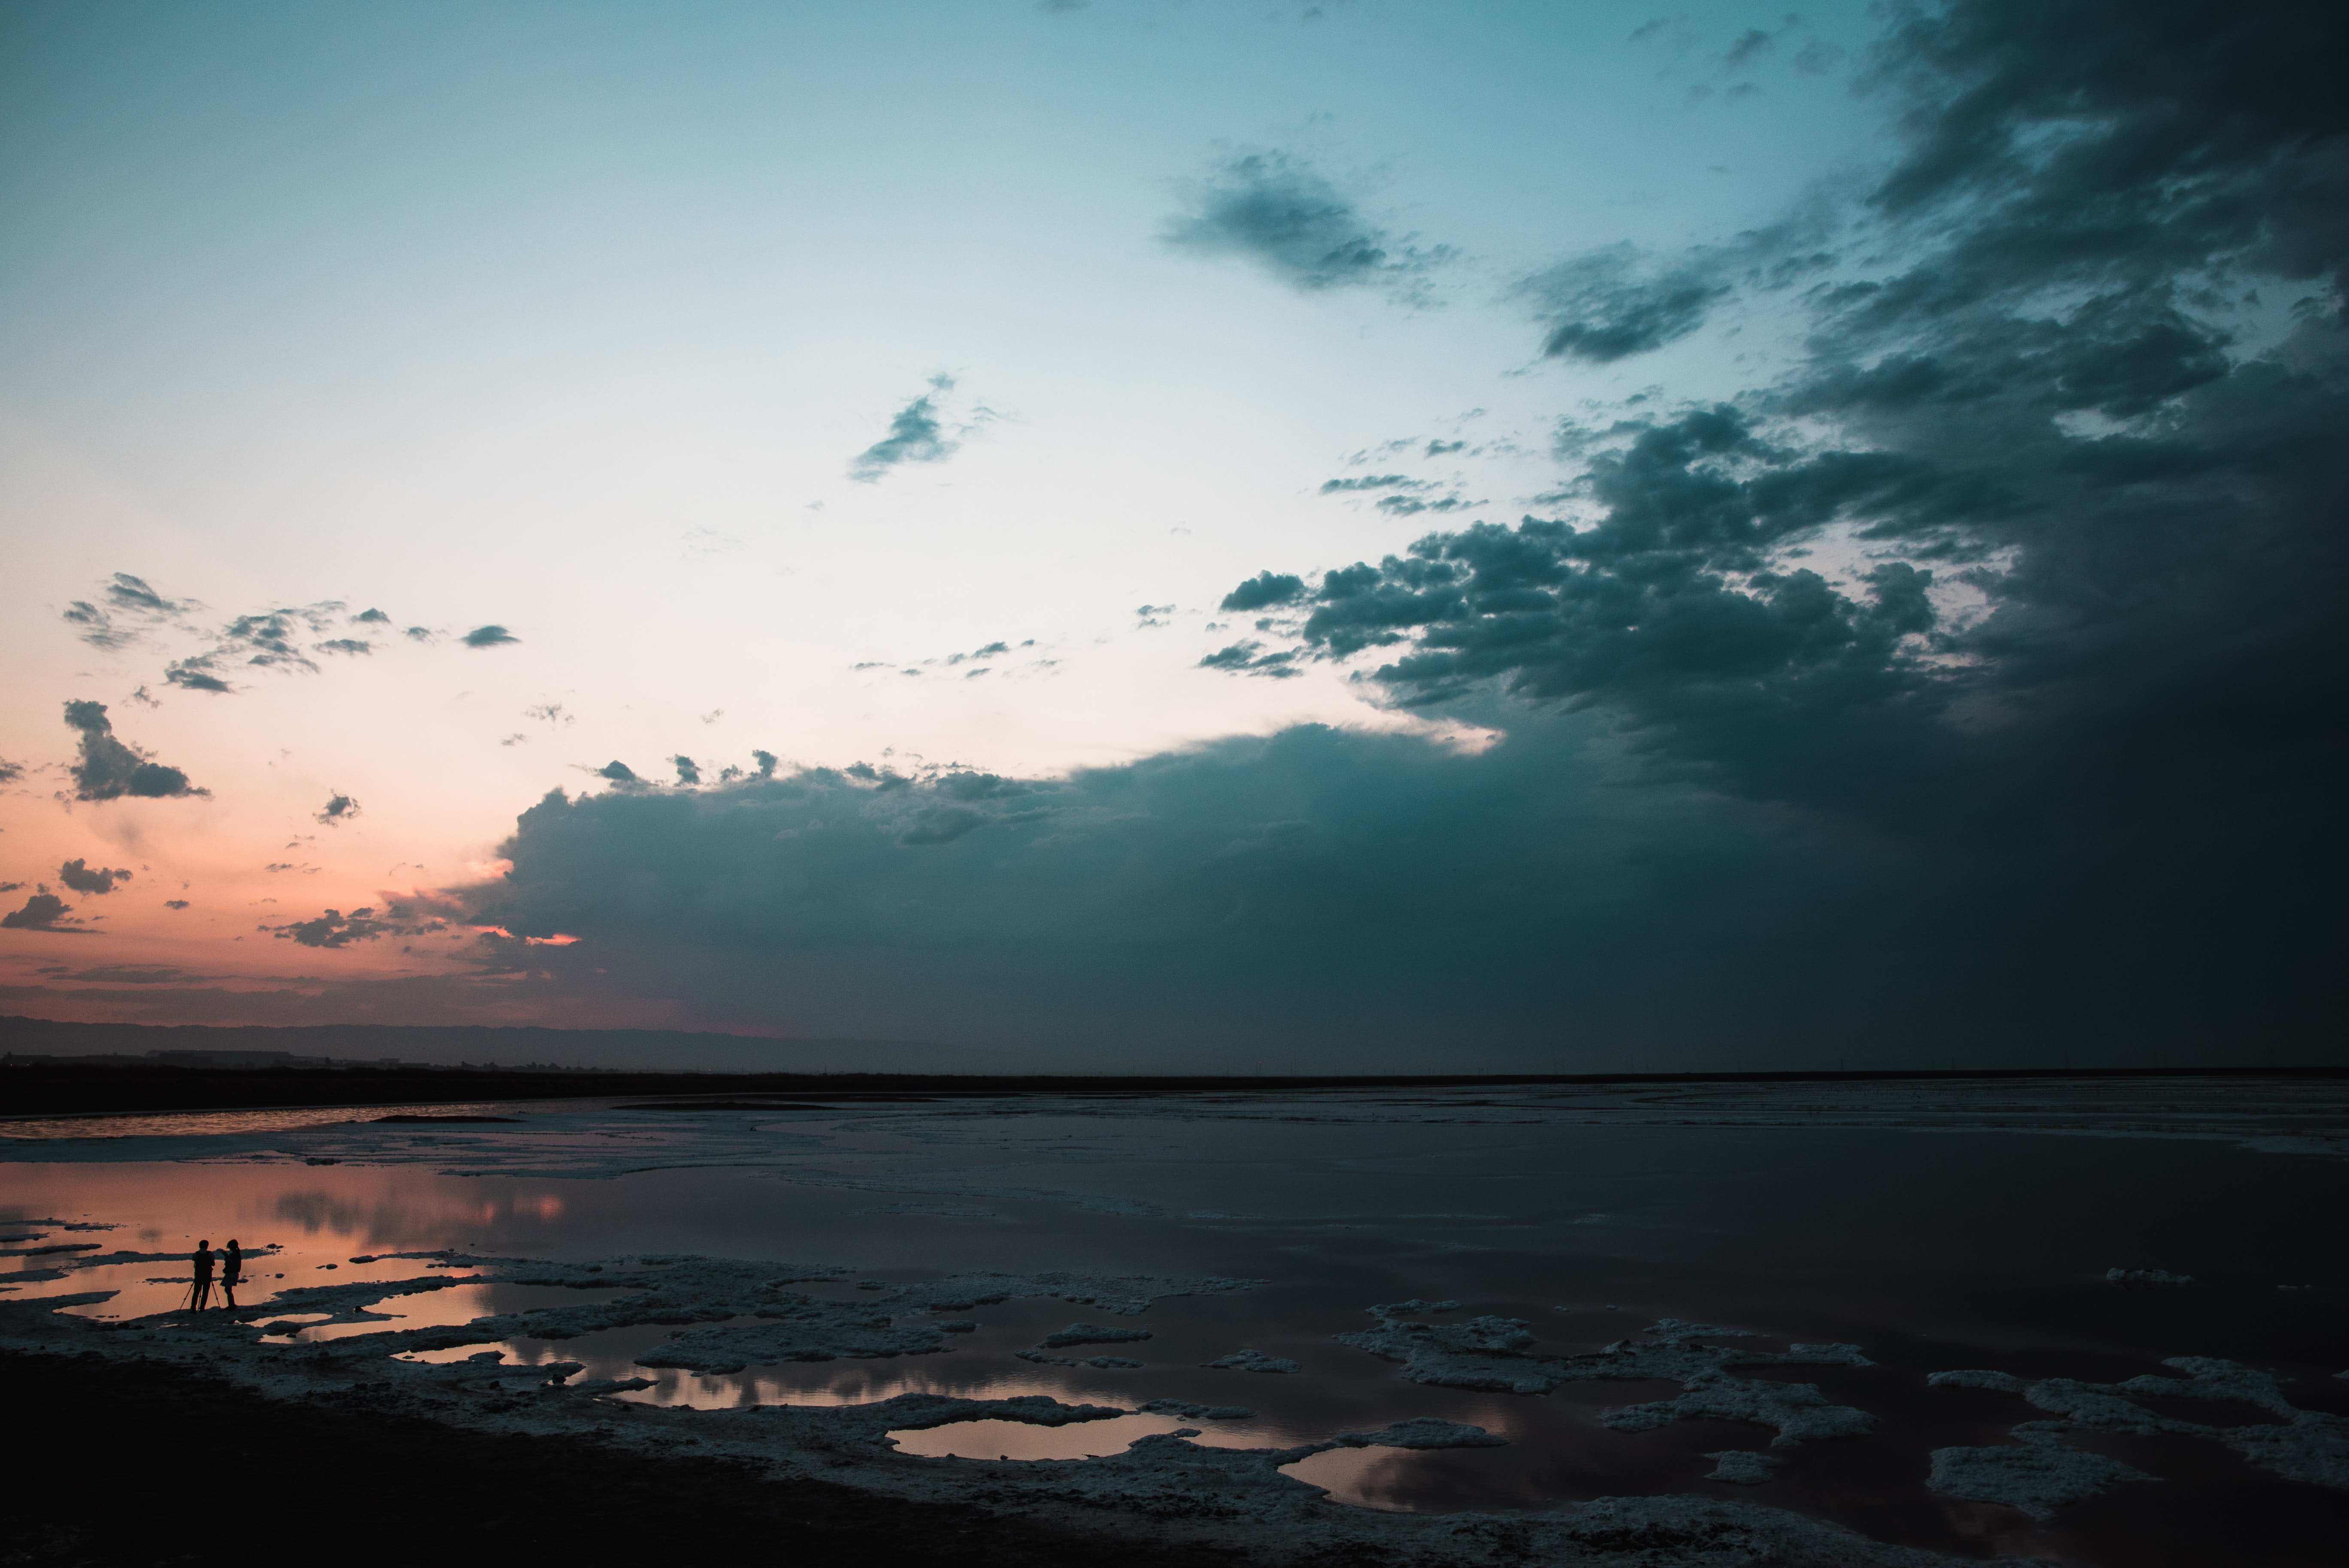 body of water under blue and white cloudy sky